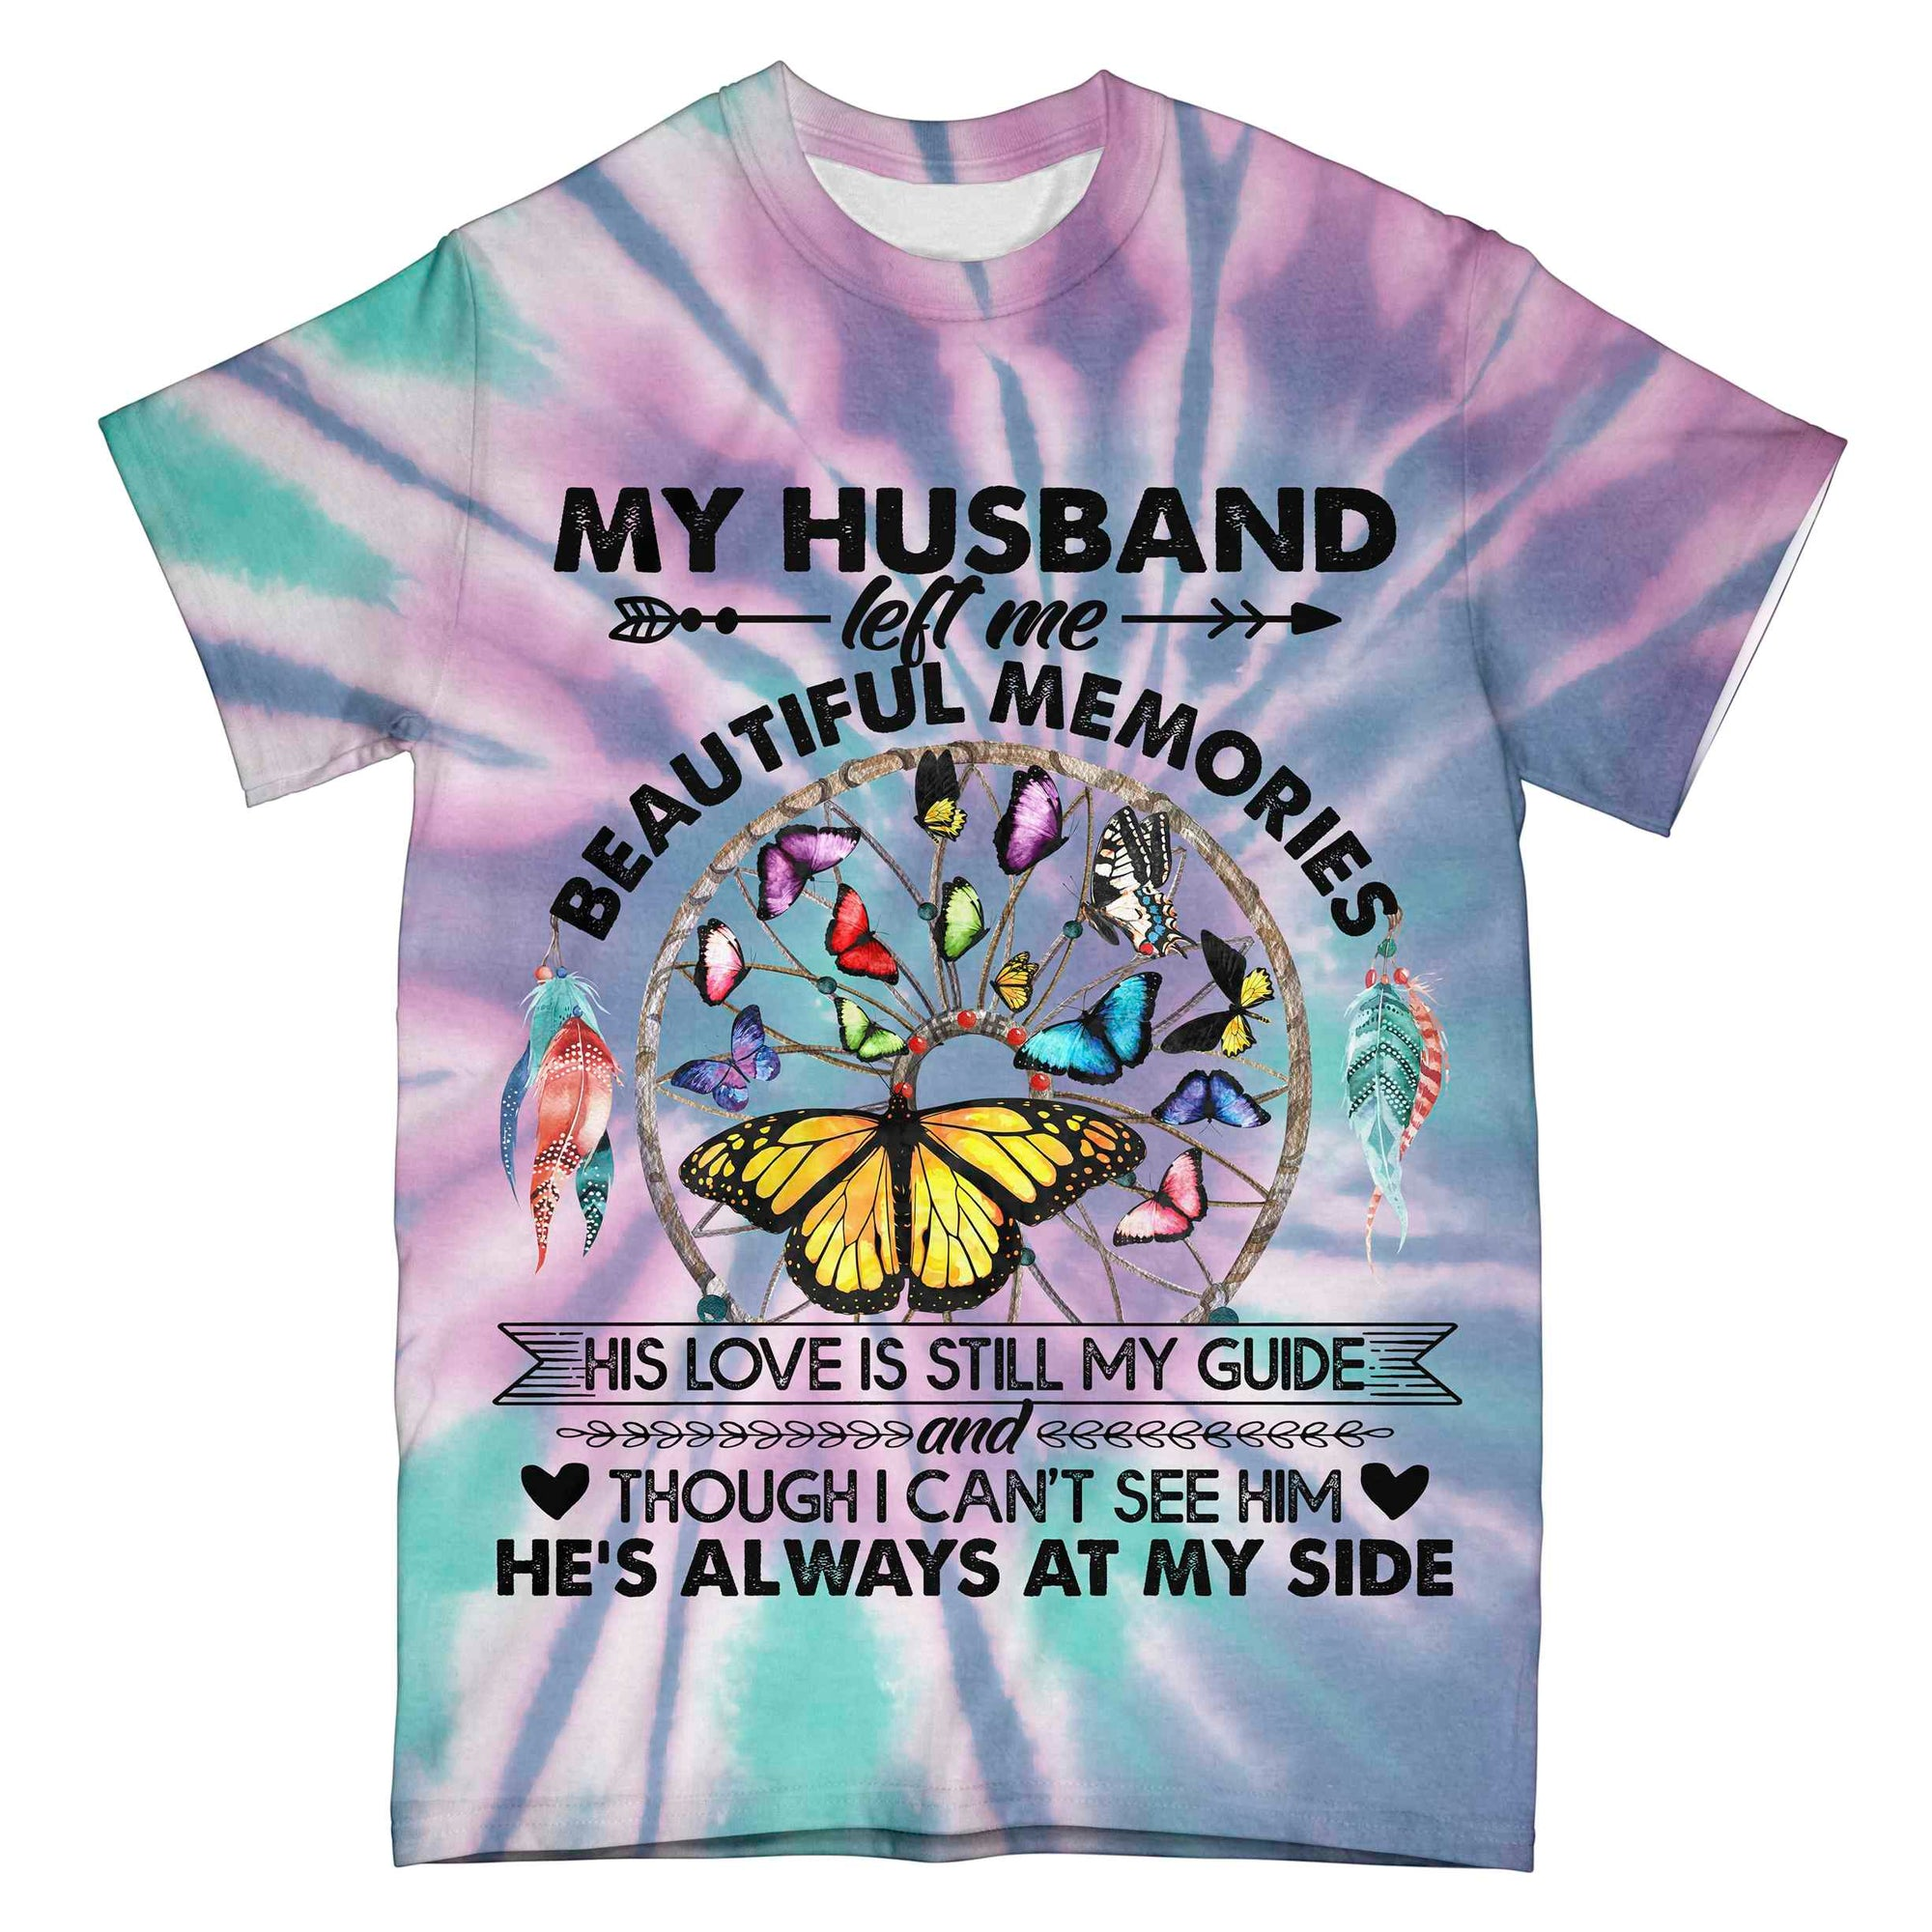 My Husband Left Me Tie Dye EZ02 0904 All Over T-shirt